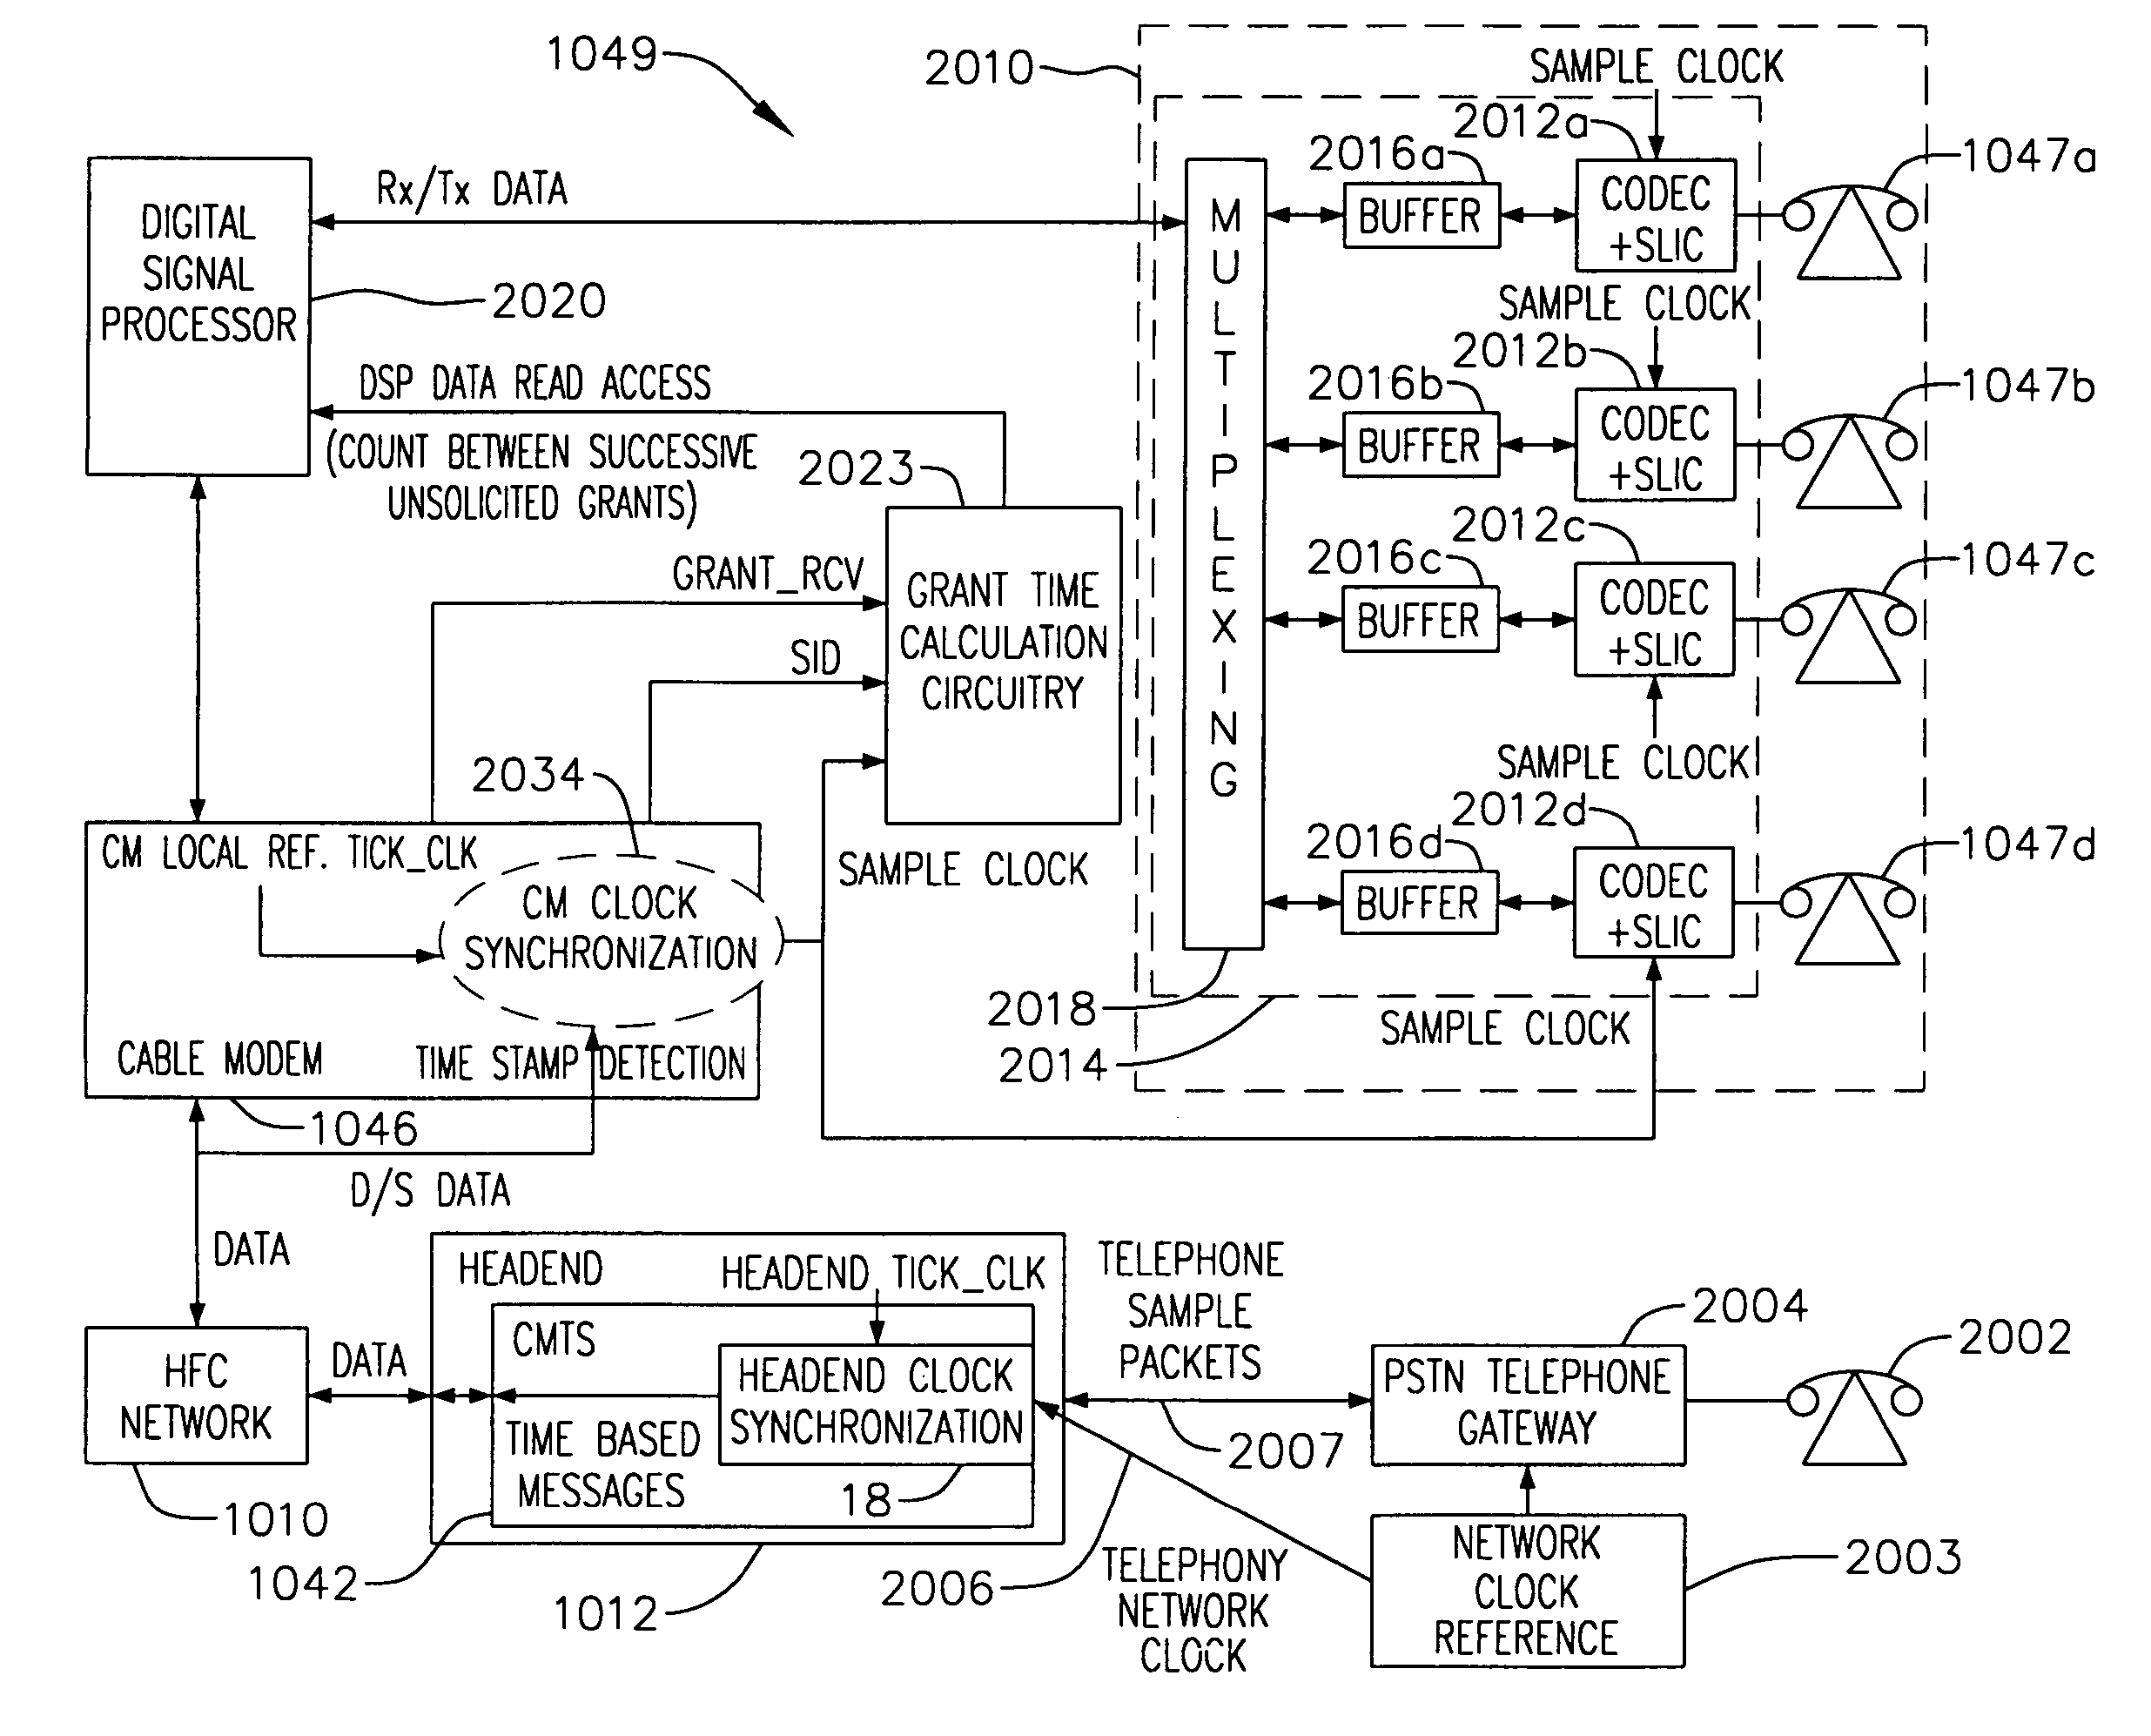 Us7190704 Cable Modem System With Sample And Packet Telephony Definition Diagram Patent Drawing